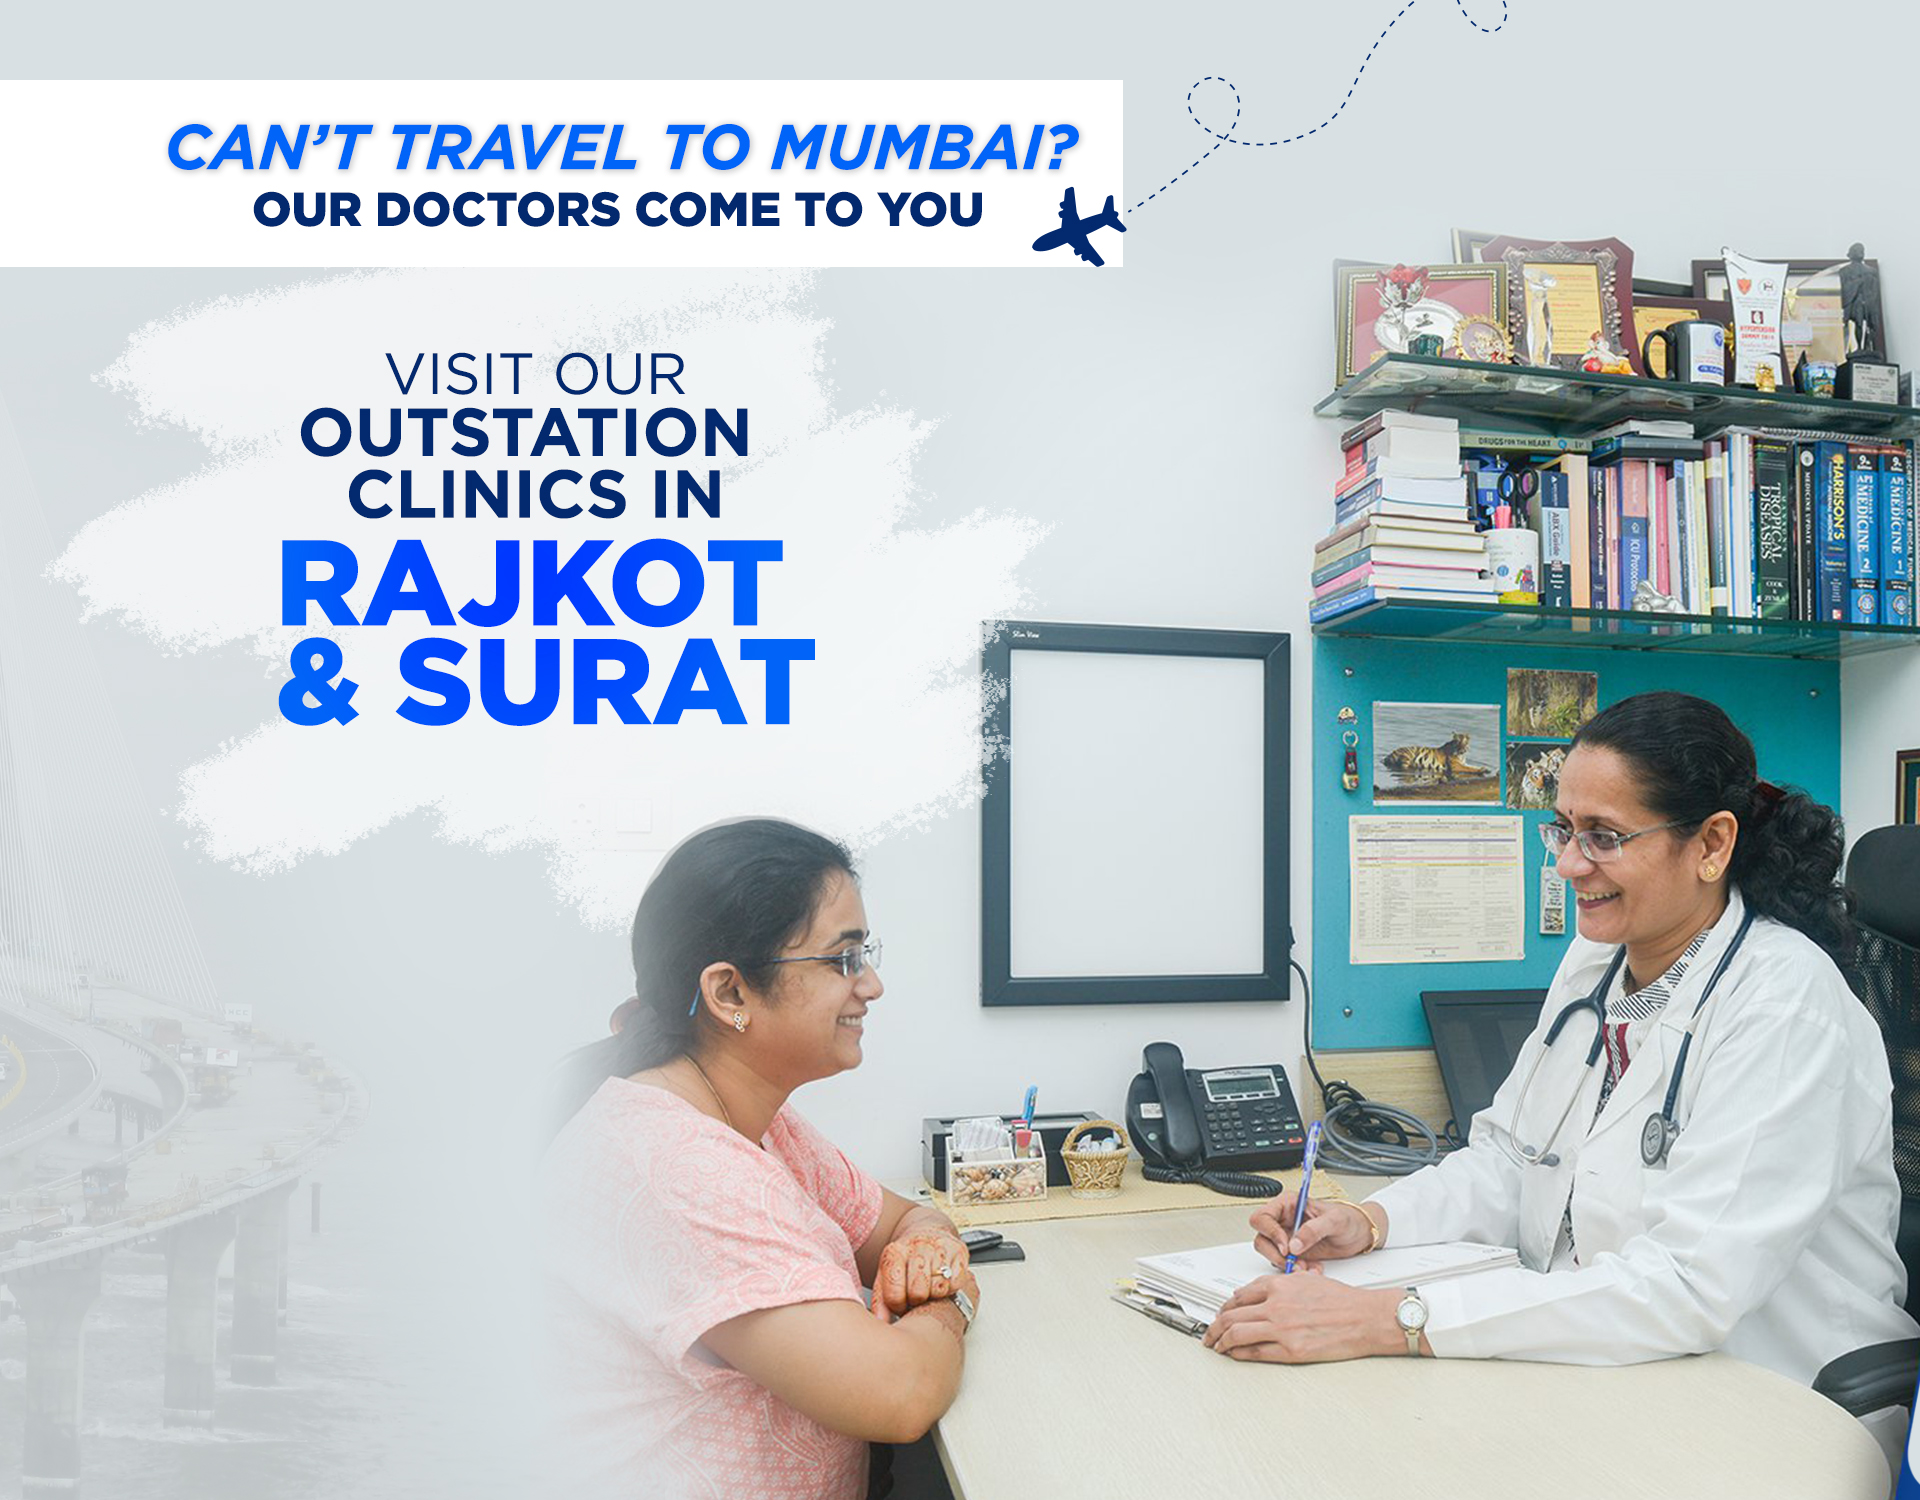 Kokilaben Dhirubhai Ambani Hospital - Visit Our Out Station Clinics In Rajkot & Surat